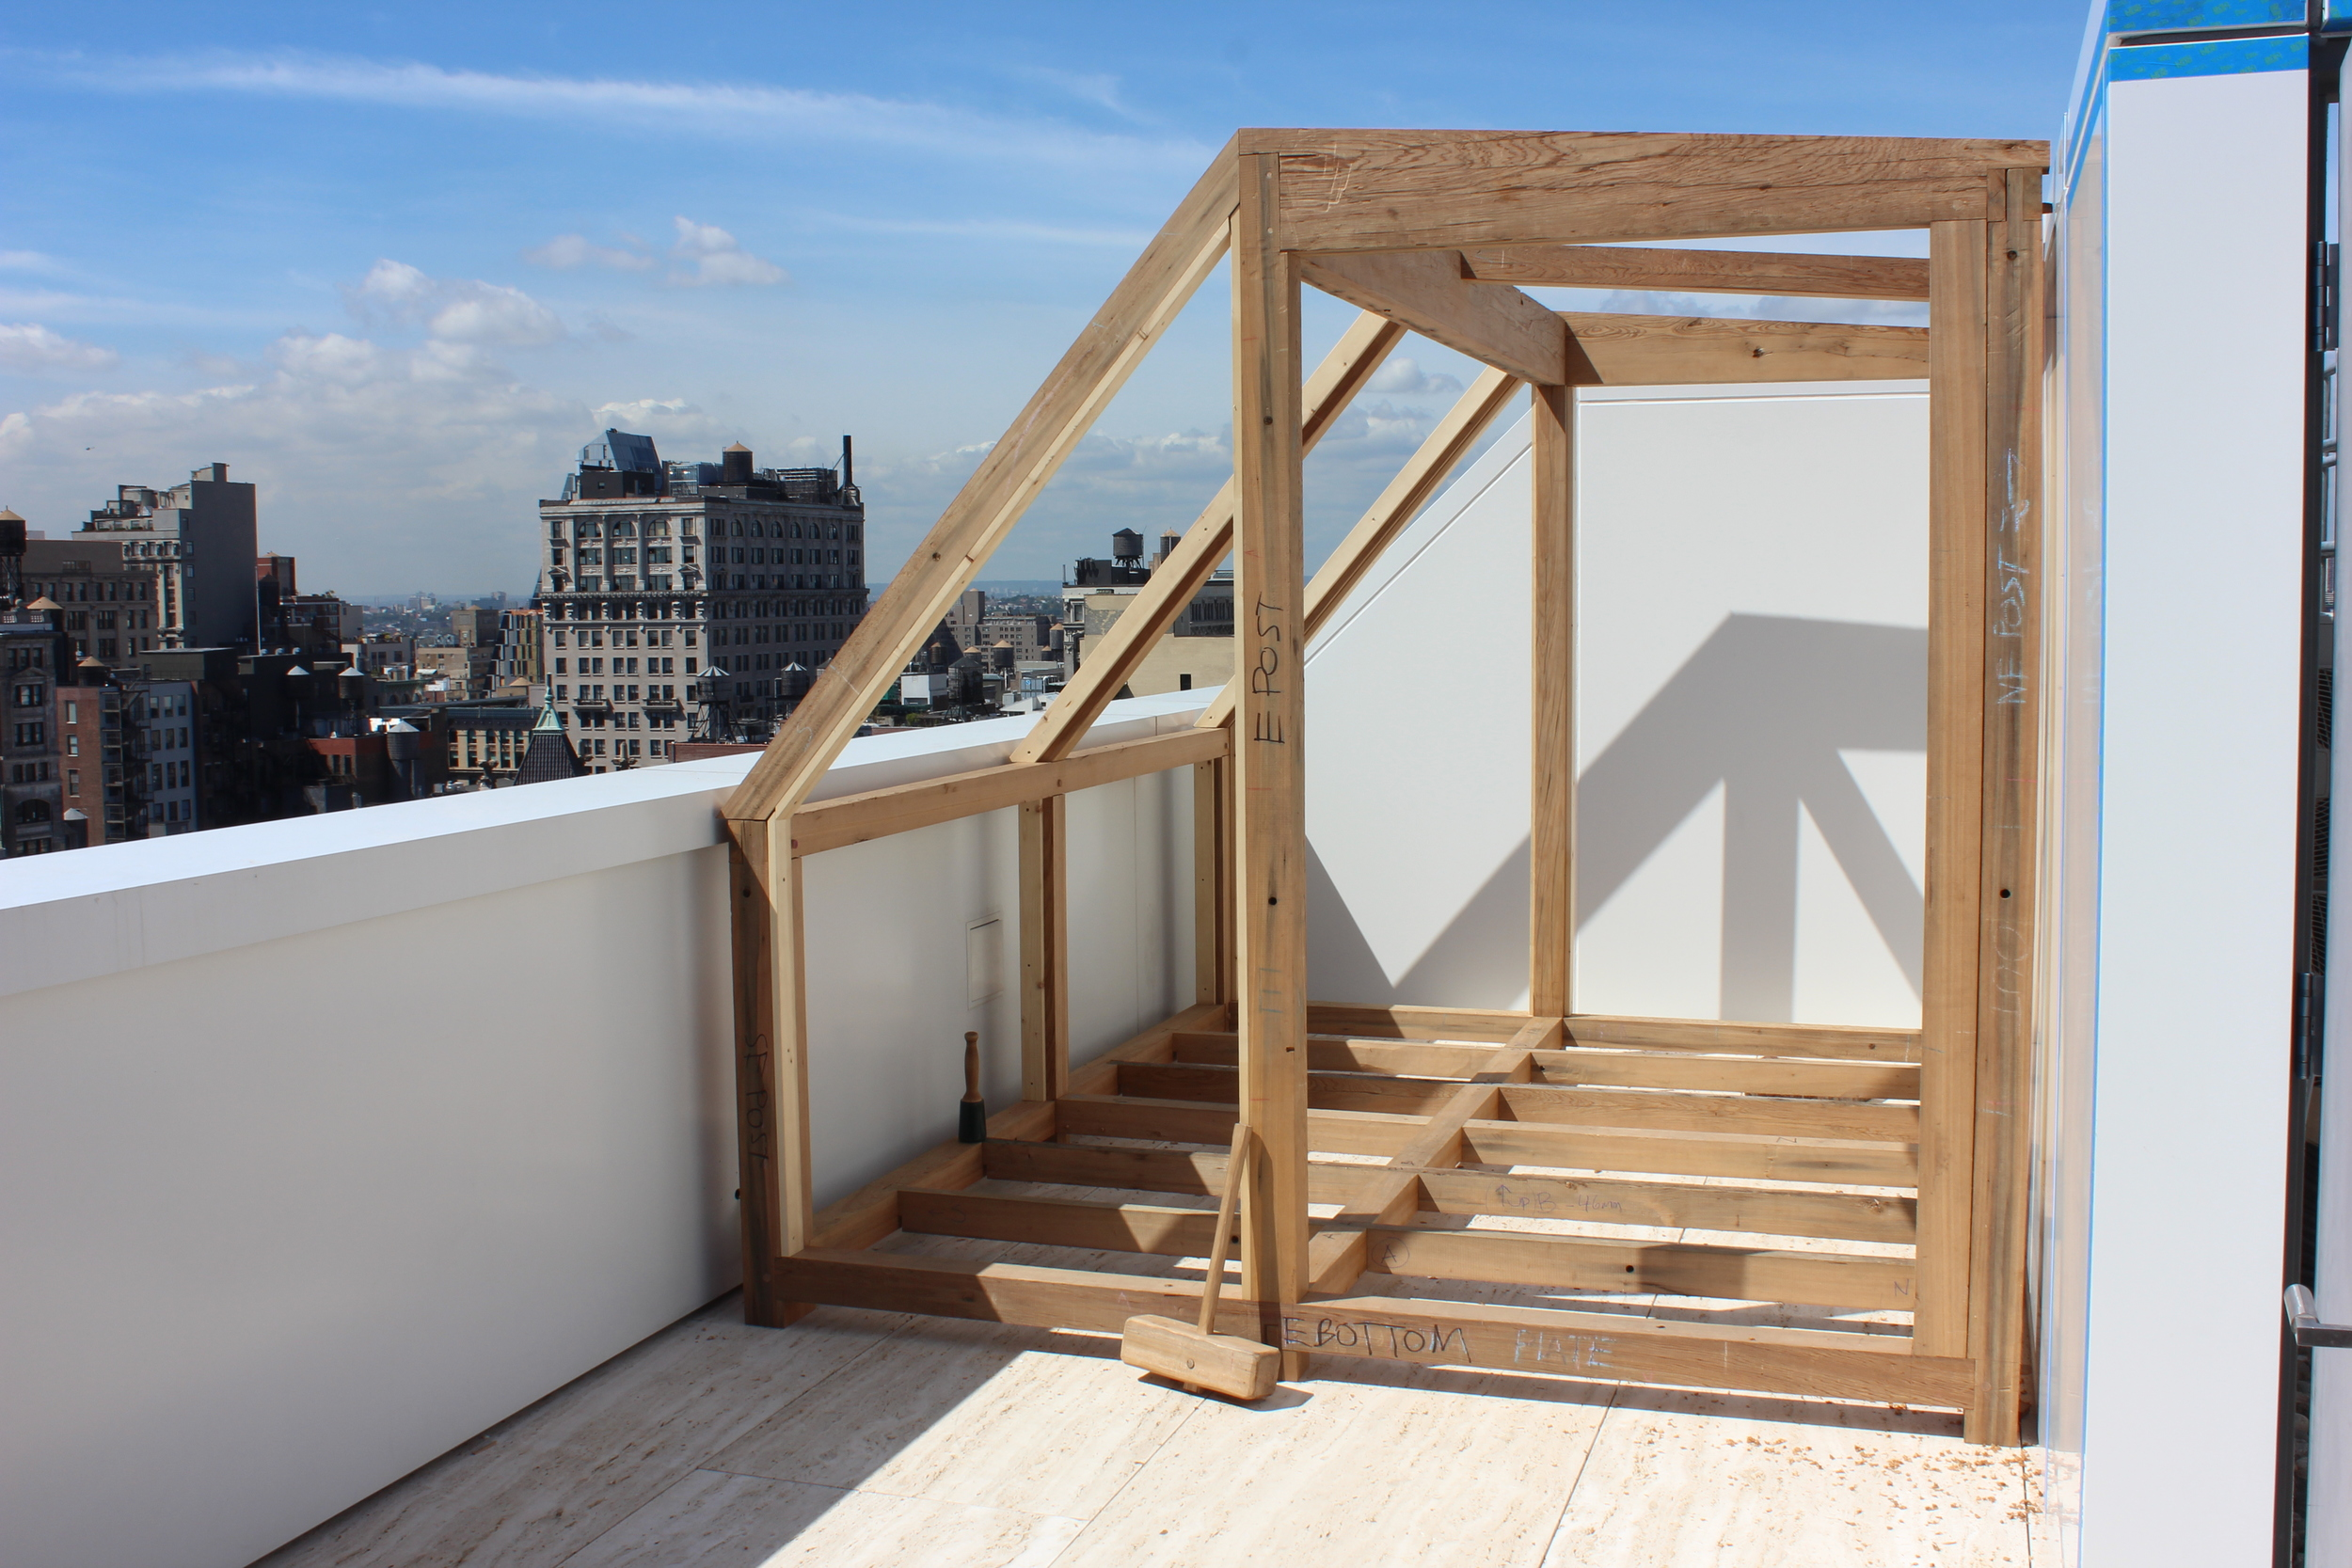 Rooftop timber framed cabin for SØREN ROSE STUDIO  NYC